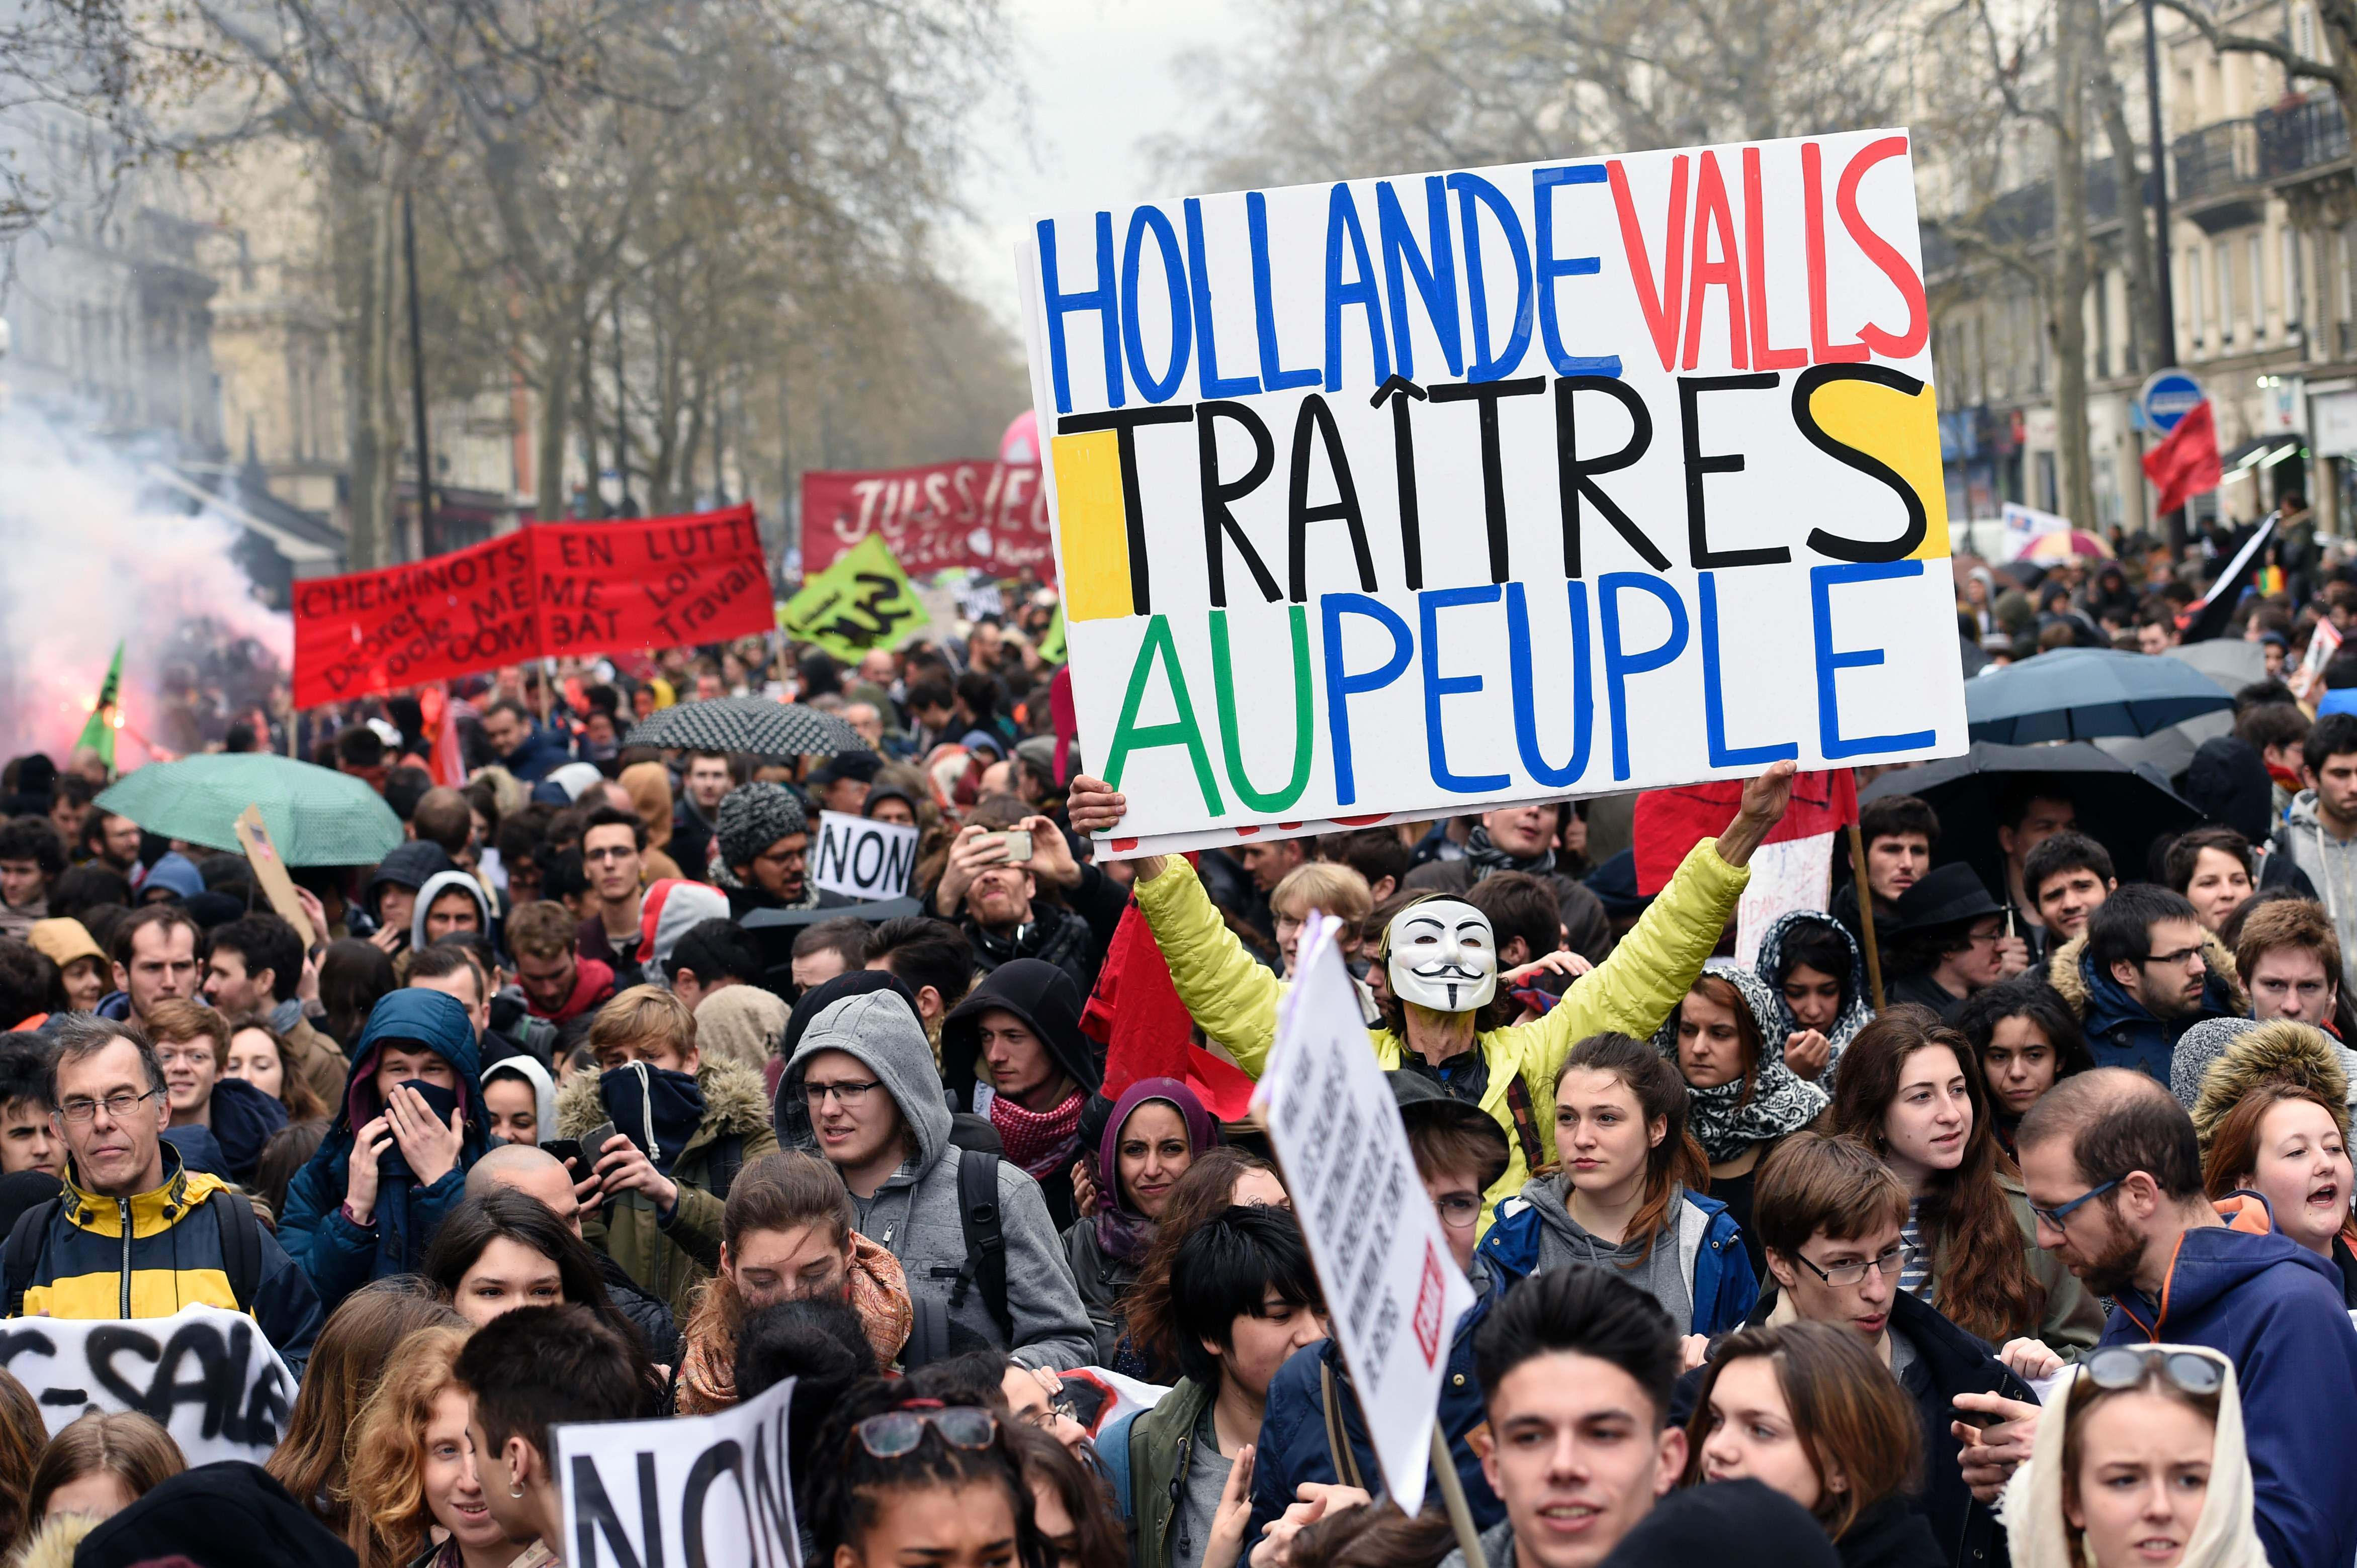 """2016-04-09 15:21:46 TOPSHOT - Protester Jean-Baptiste Redde aka Voltuan (C-R) holds up a placard reading """"Hollande, Valls, traitors to the people"""" in reference of French President Francois Hollande and French Prime Minister Manuel Valls, during a protest on April 9, 2016 in Paris, against the French government's proposed labour law reforms. AFP PHOTO / MIGUEL MEDINA / AFP PHOTO / MIGUEL MEDINA"""